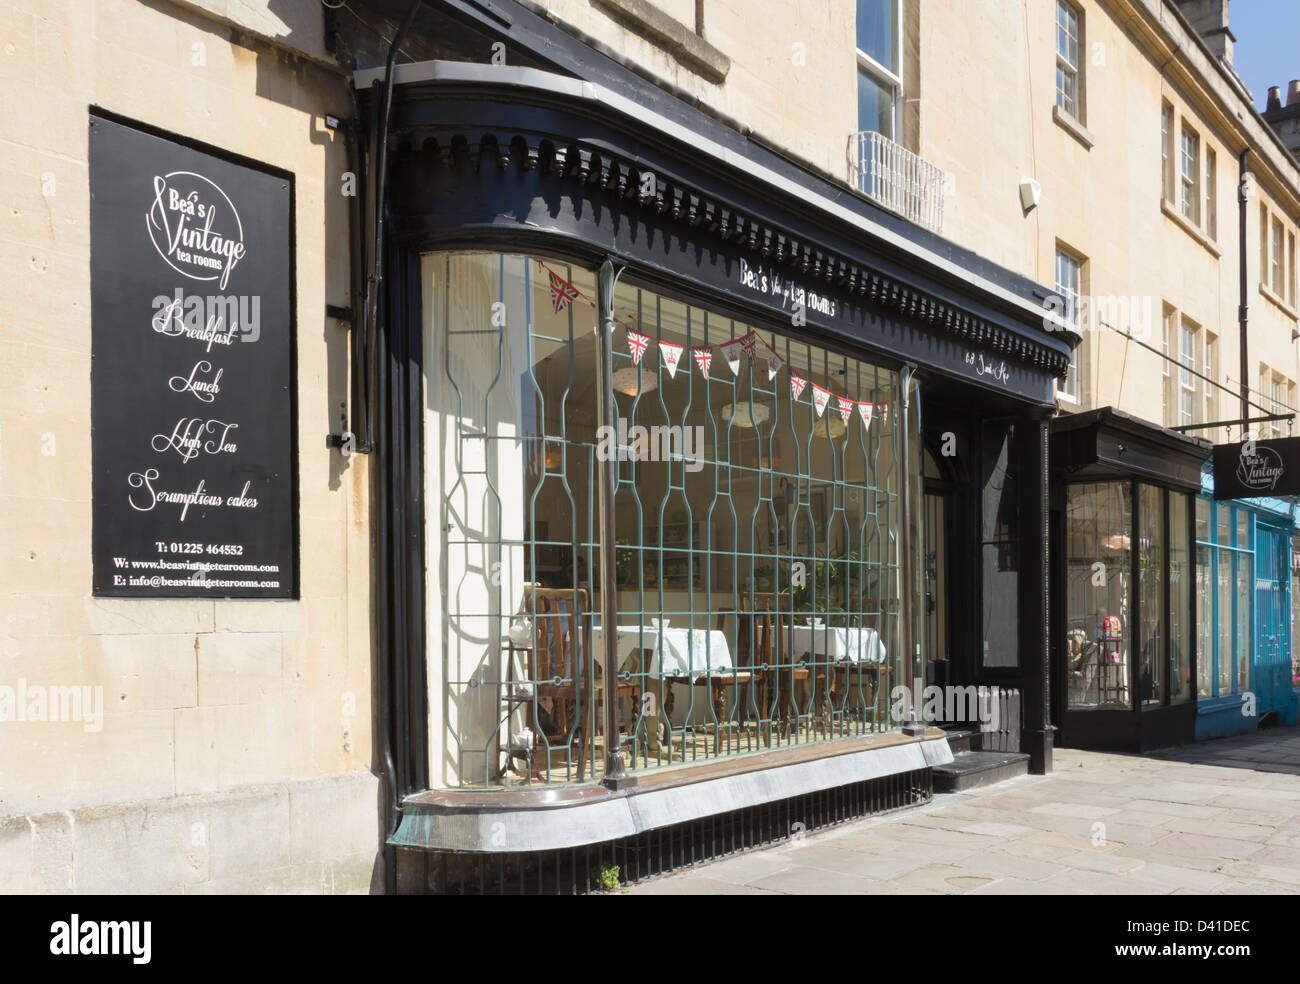 Beas Vintage tea rooms on Saville Row in Bath. Furnished and styled in 1930s-1940s period decor. - Stock Image